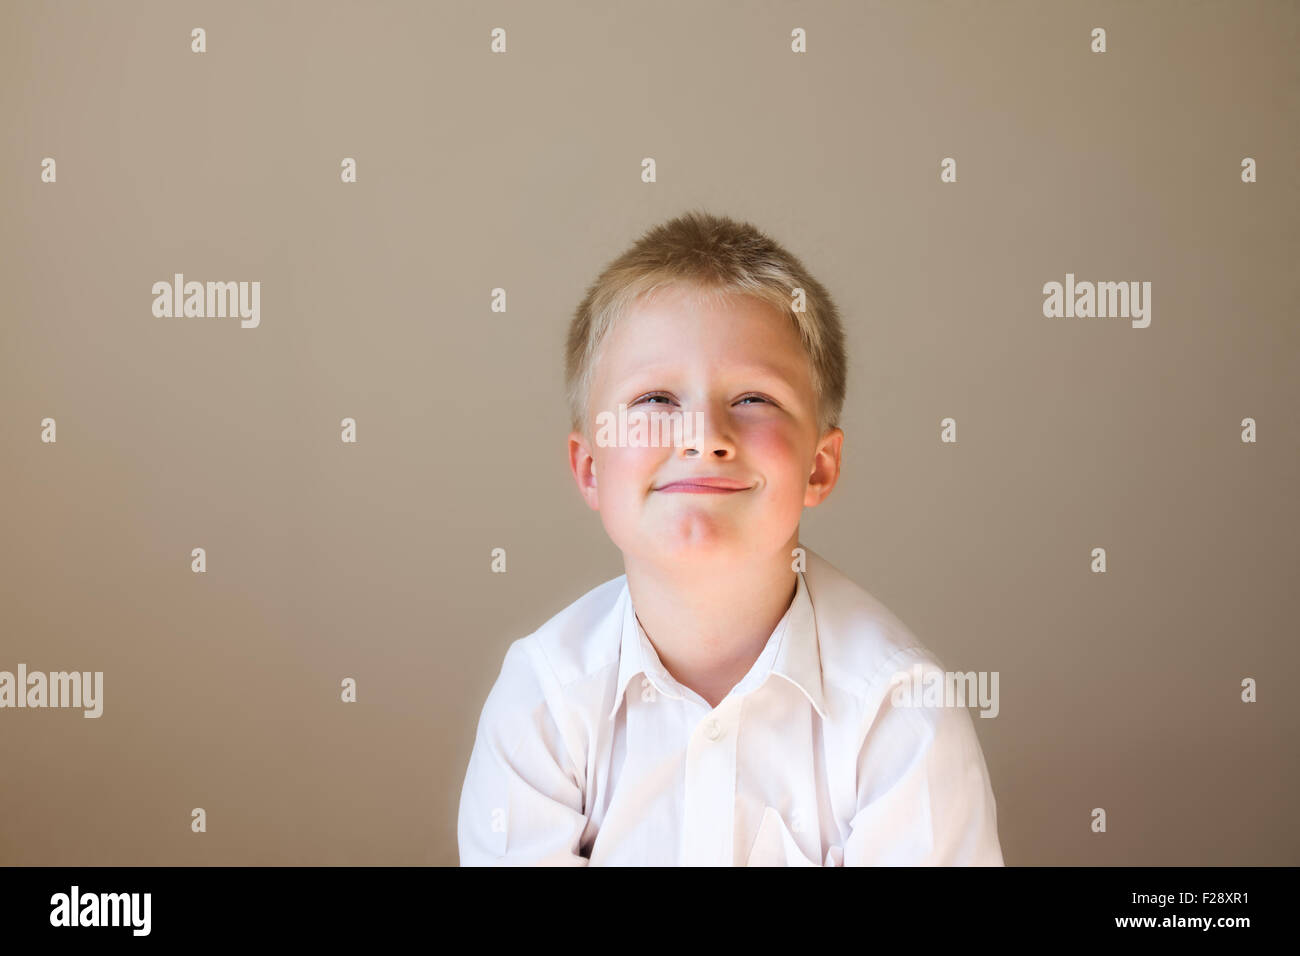 Funny tricky child (boy) thinking over grey background with copy space - Stock Image